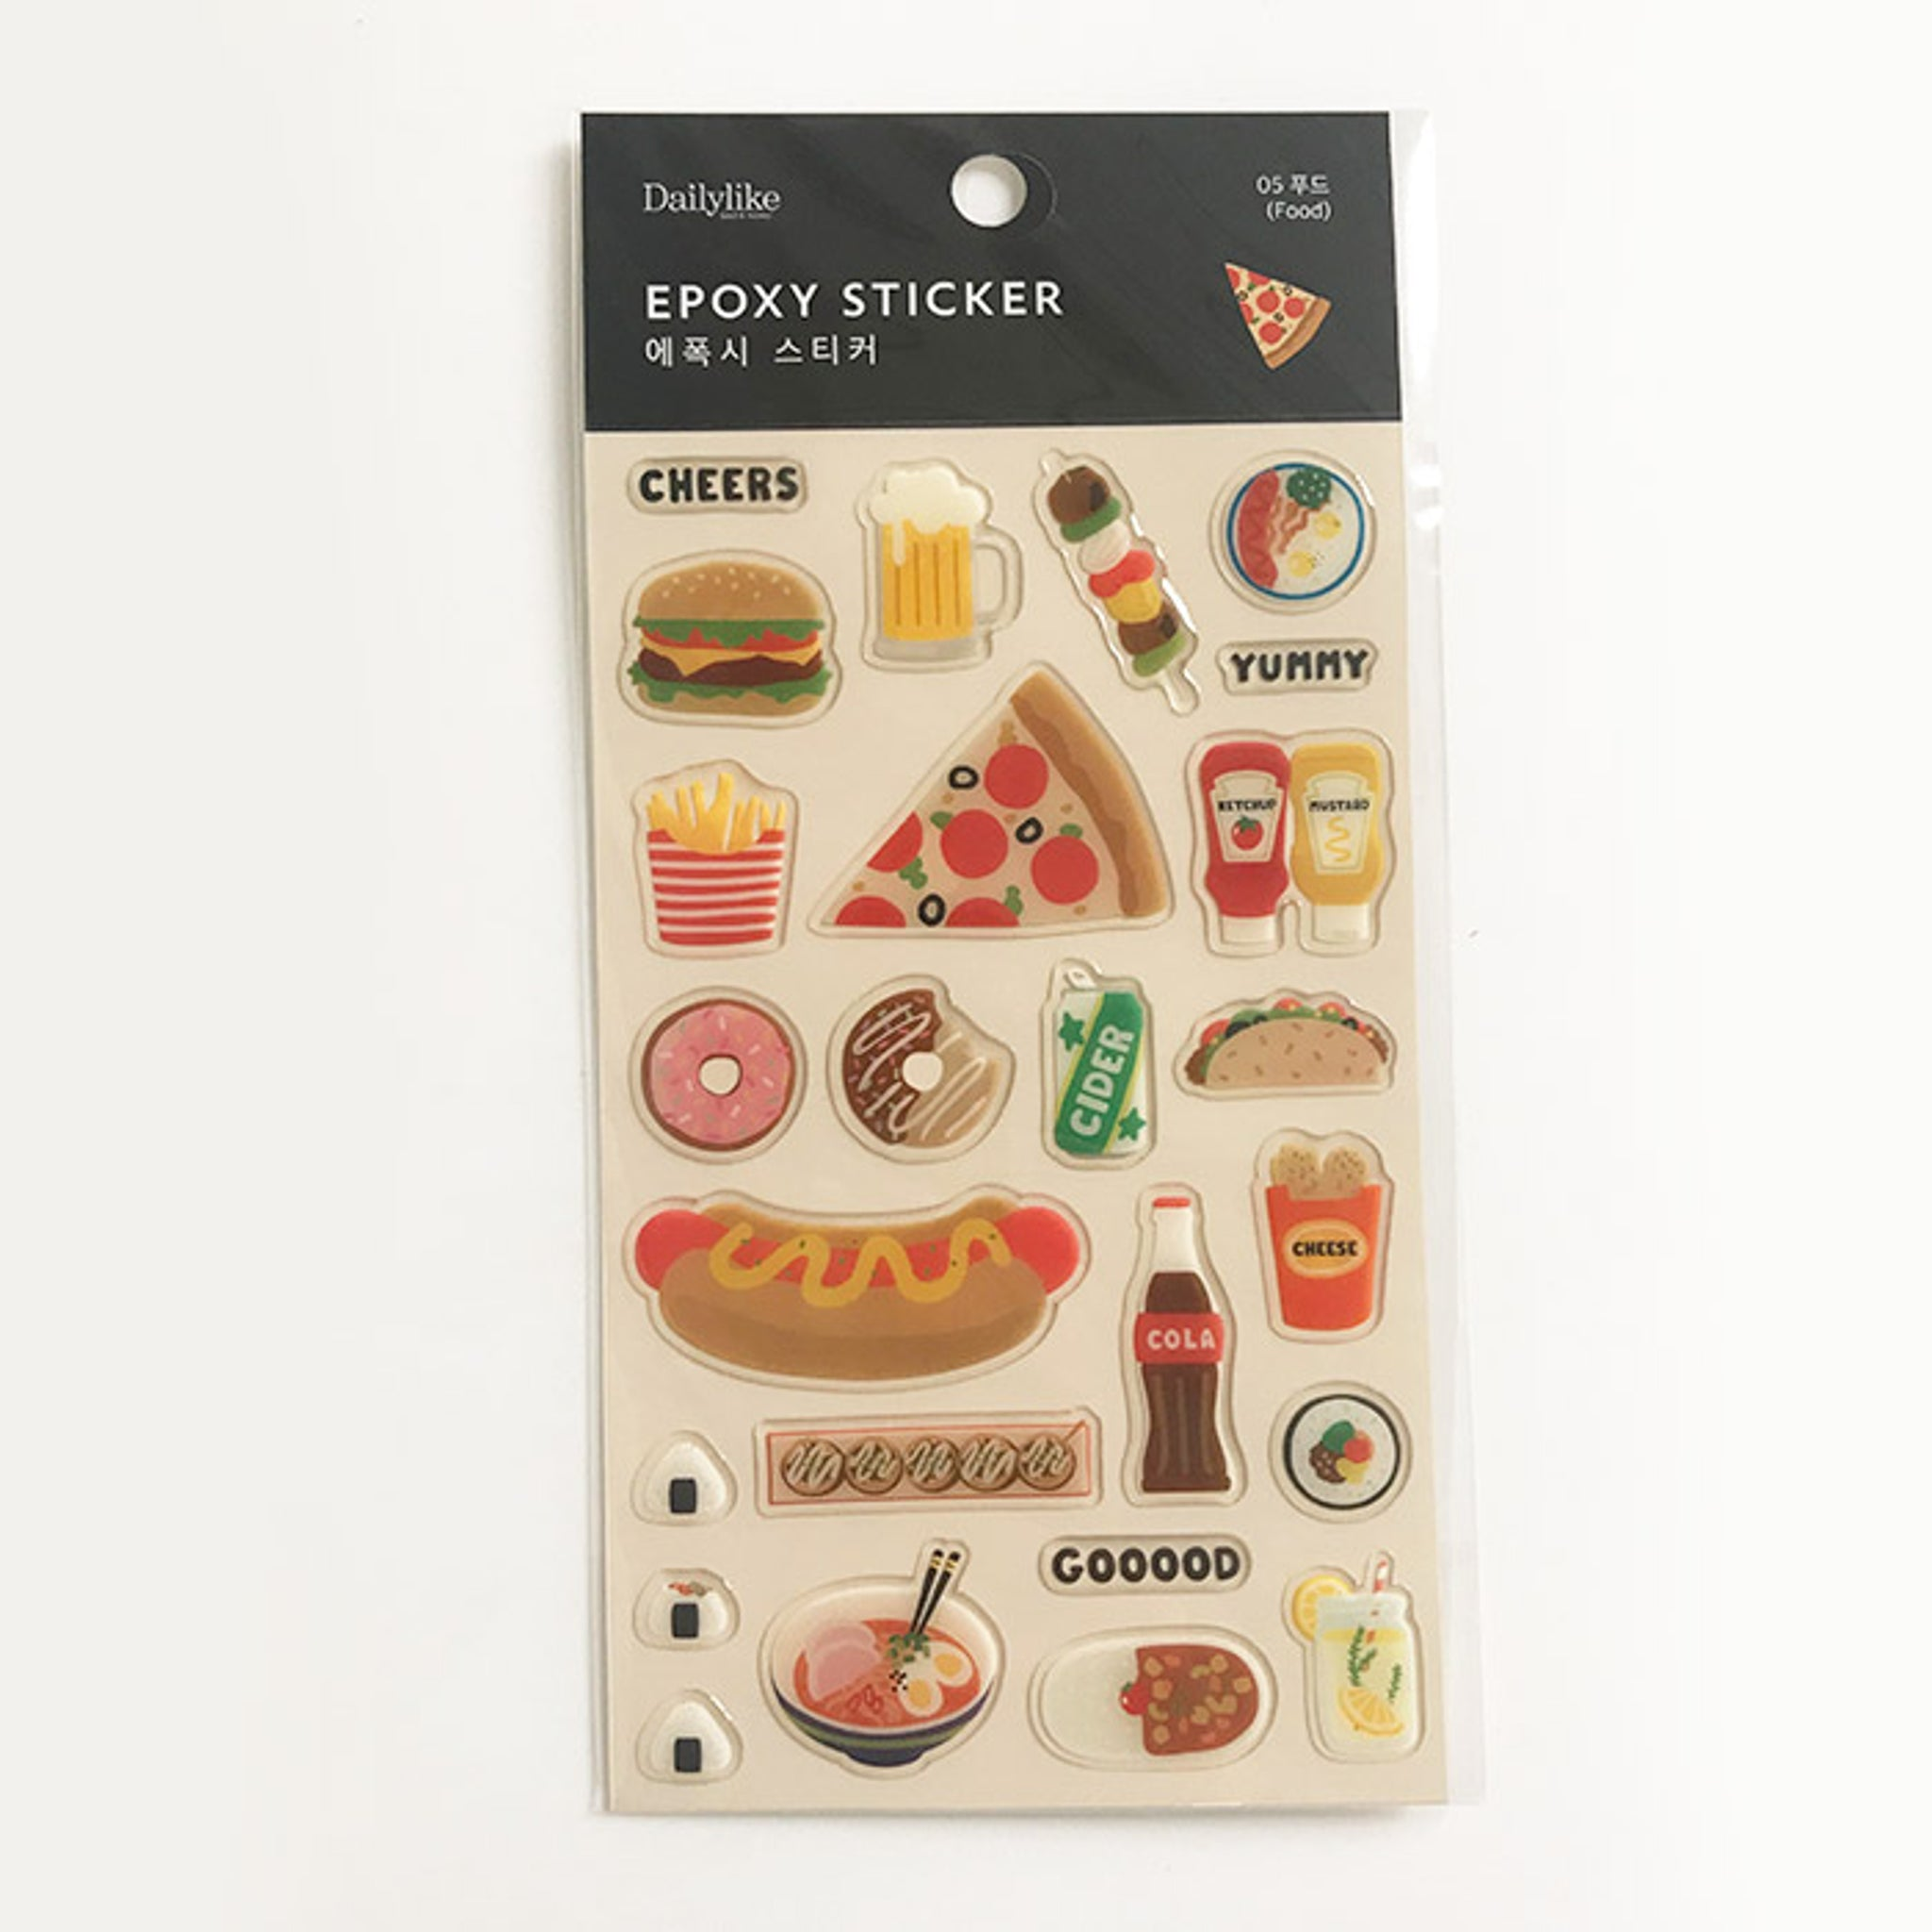 DailyLike Epoxy Sticker 05 Food